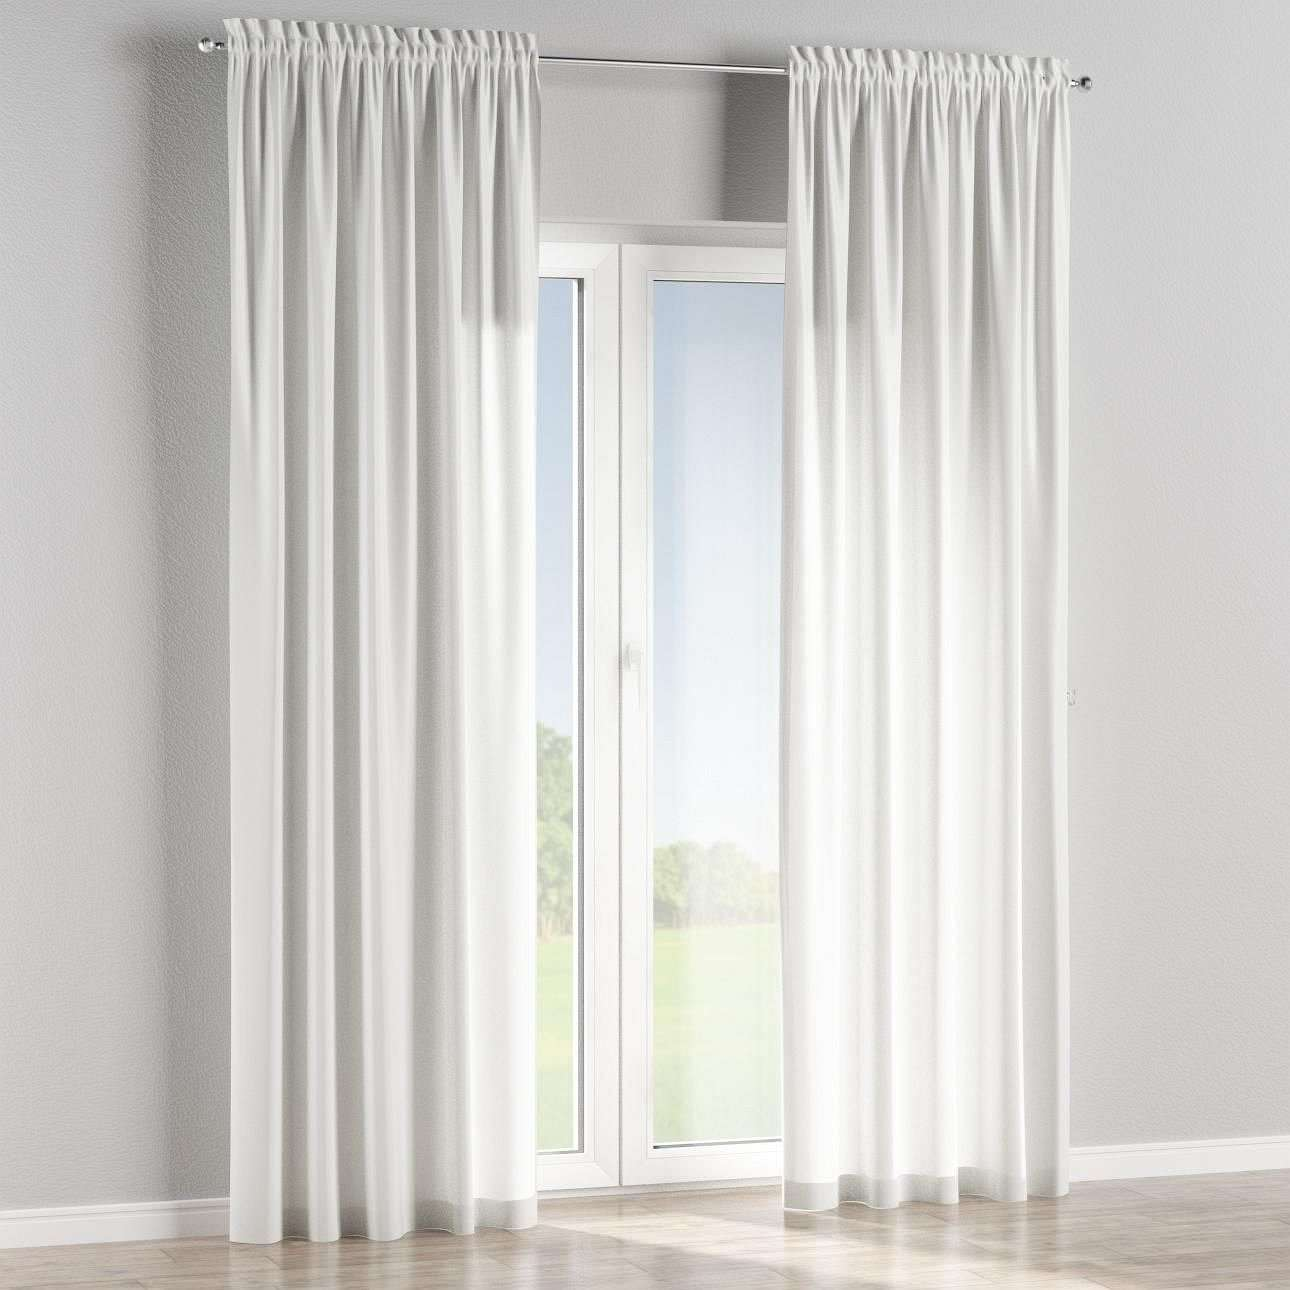 Slot and frill curtains in collection Odisea, fabric: 412-53